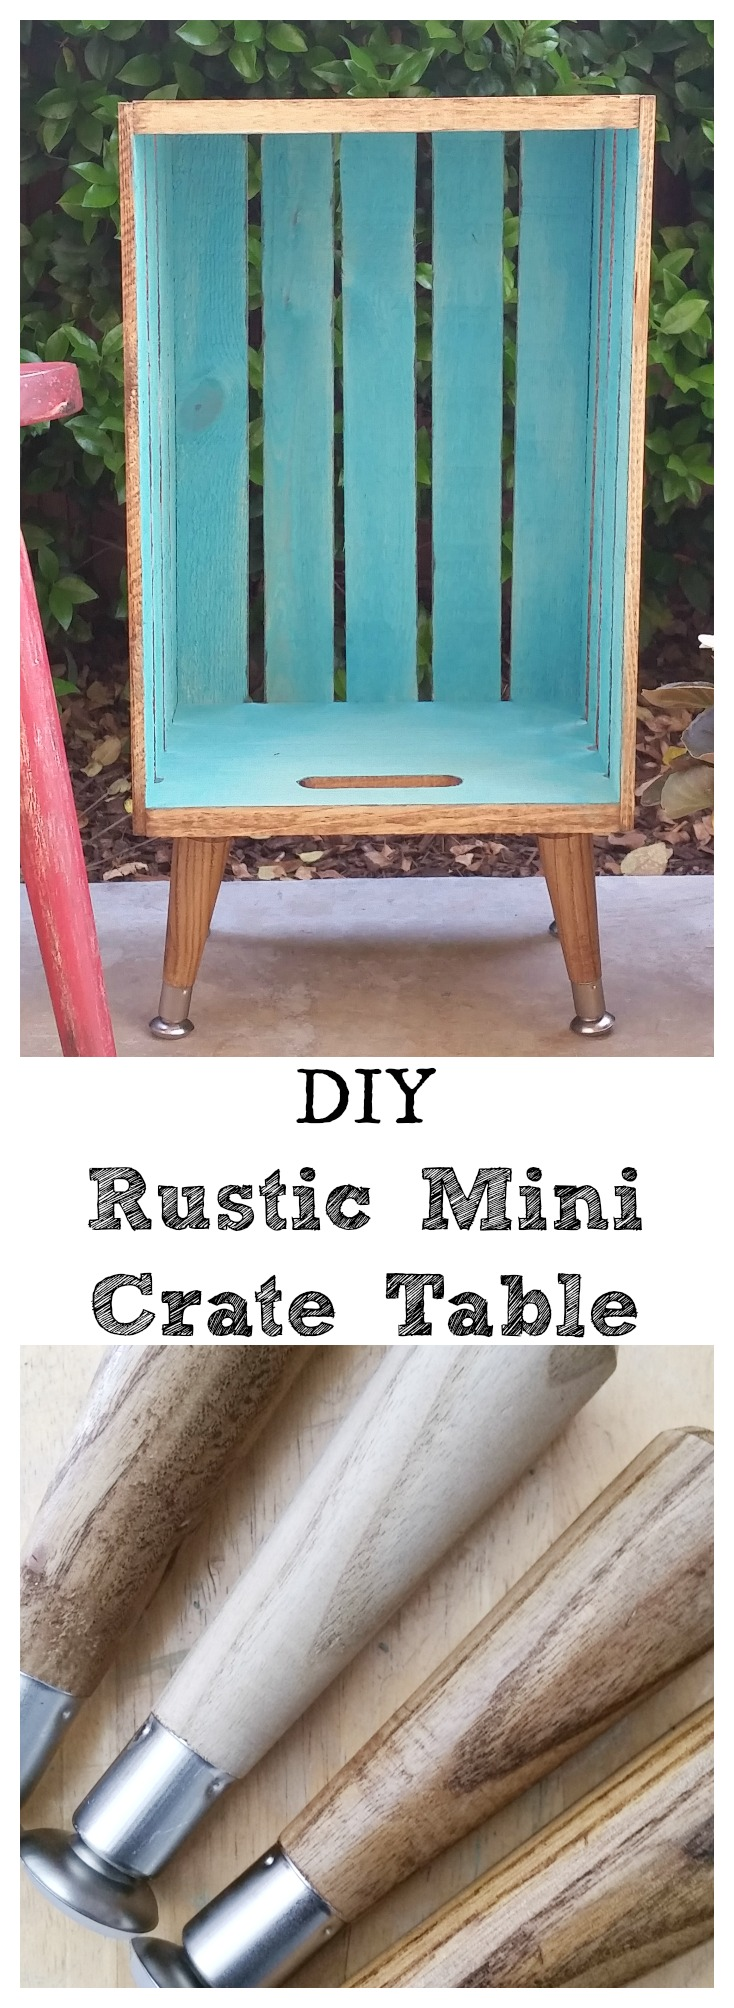 DIY Rustic Mini Crate Table